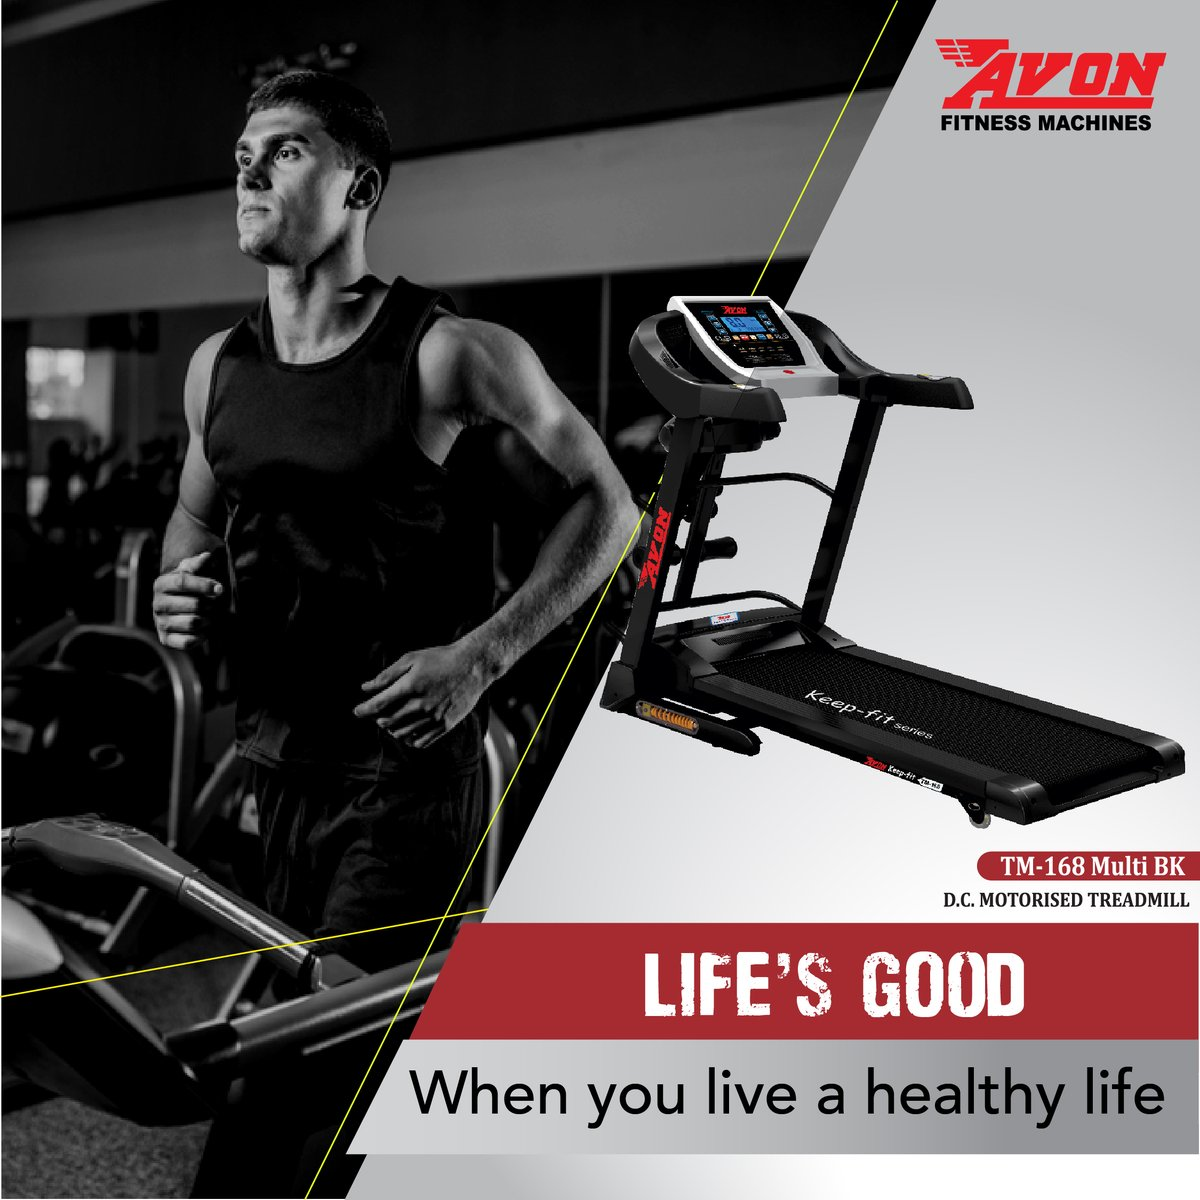 Exercising improves your lifestyle. Live a healthy life with AVON Fitness Machines.   #AVON #Fitness #Gym #Workout #FitnessMachines #Treadmill #Cardio #GymEquipment #Health #Diet #CrossTrainer #UprightBike #Bikes #Cycles #SpinBike #MultiGym #Benches #Orbitrac #HomeGym https://t.co/9ZSSugKNRz